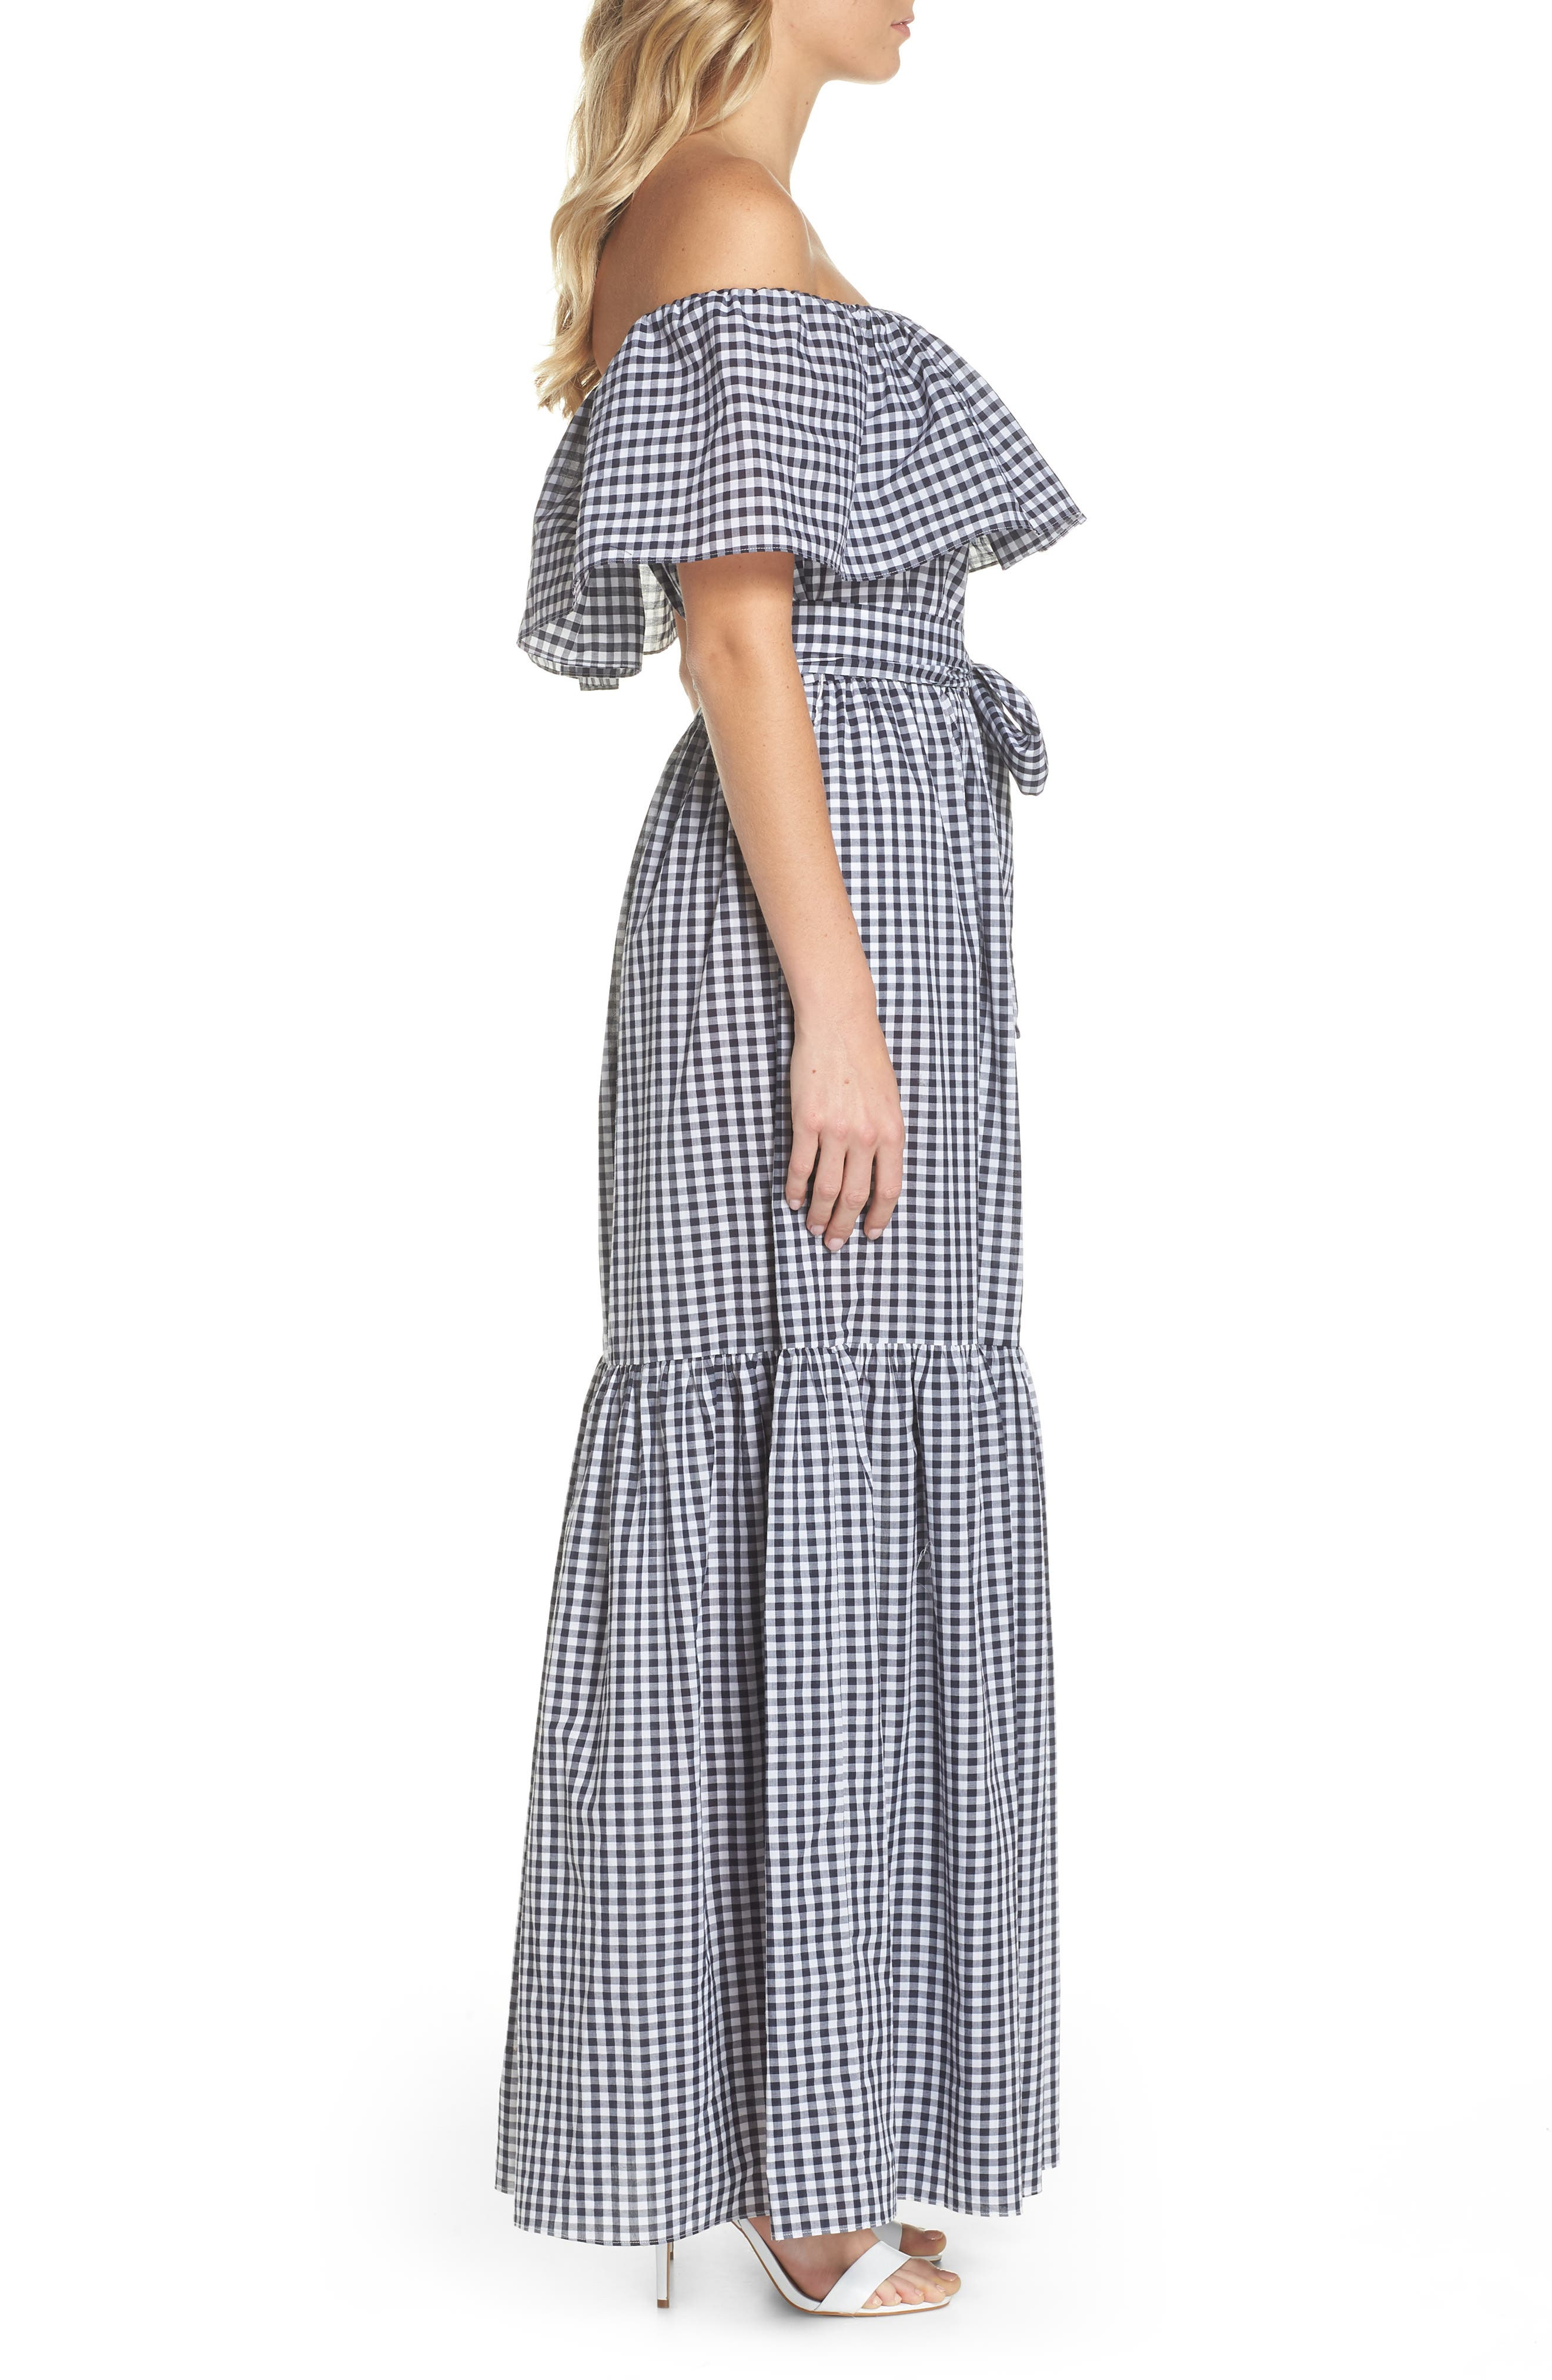 Off the Shoulder Ruffle Gingham Maxi Dress,                             Alternate thumbnail 3, color,                             410